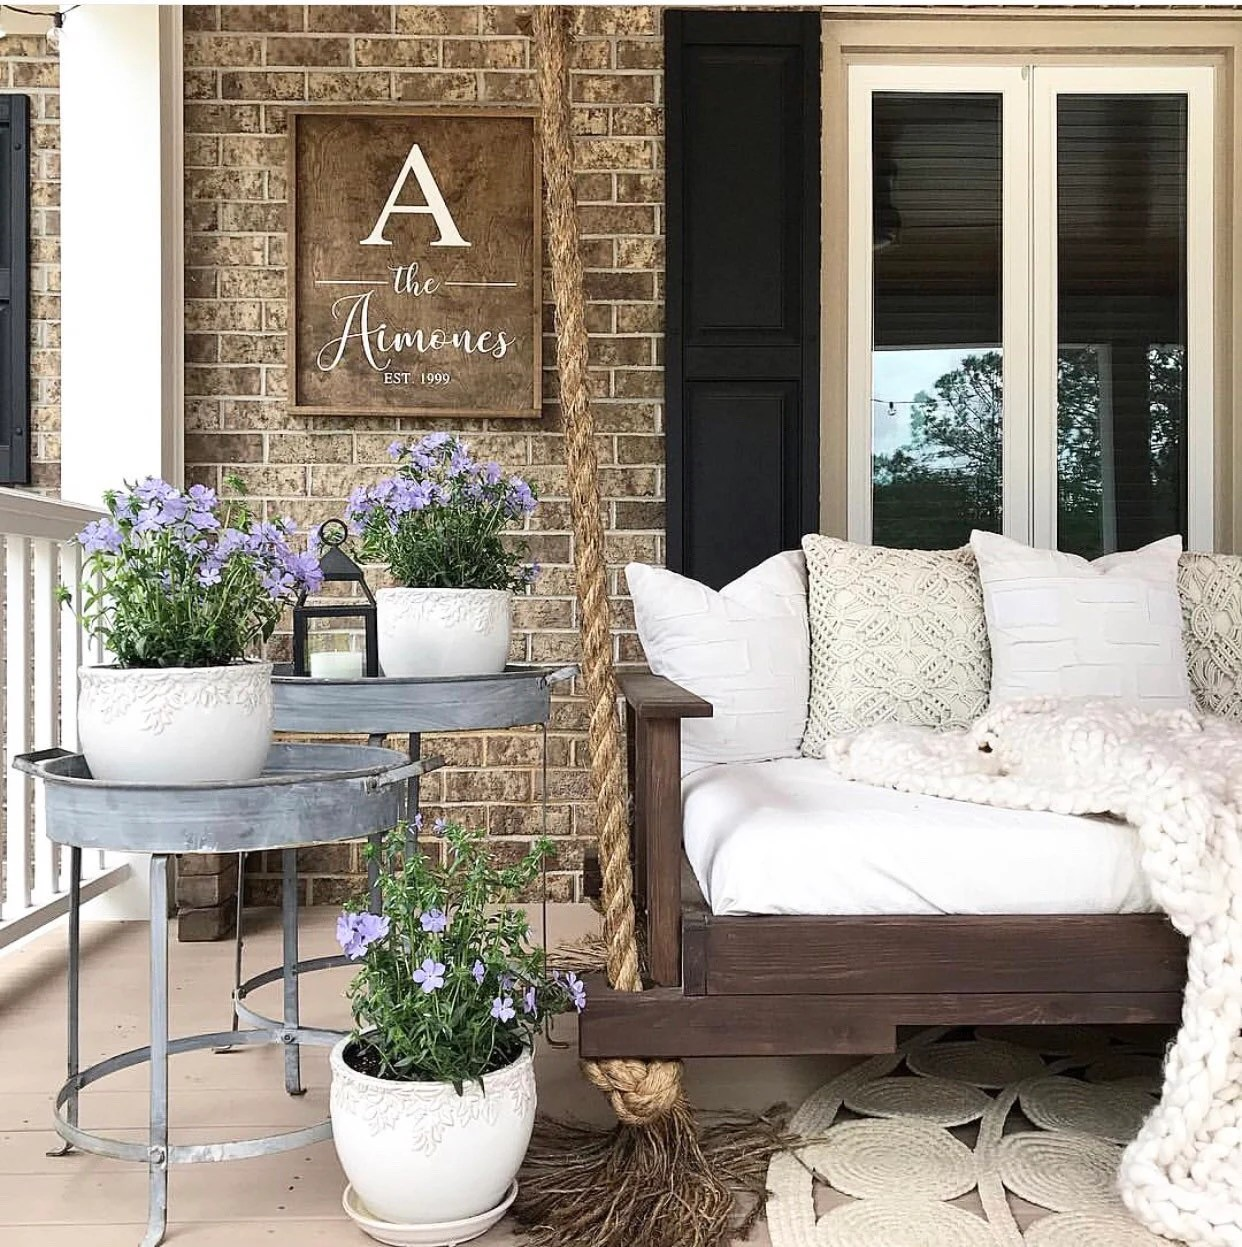 43+ Rustic Porch Ideas Background